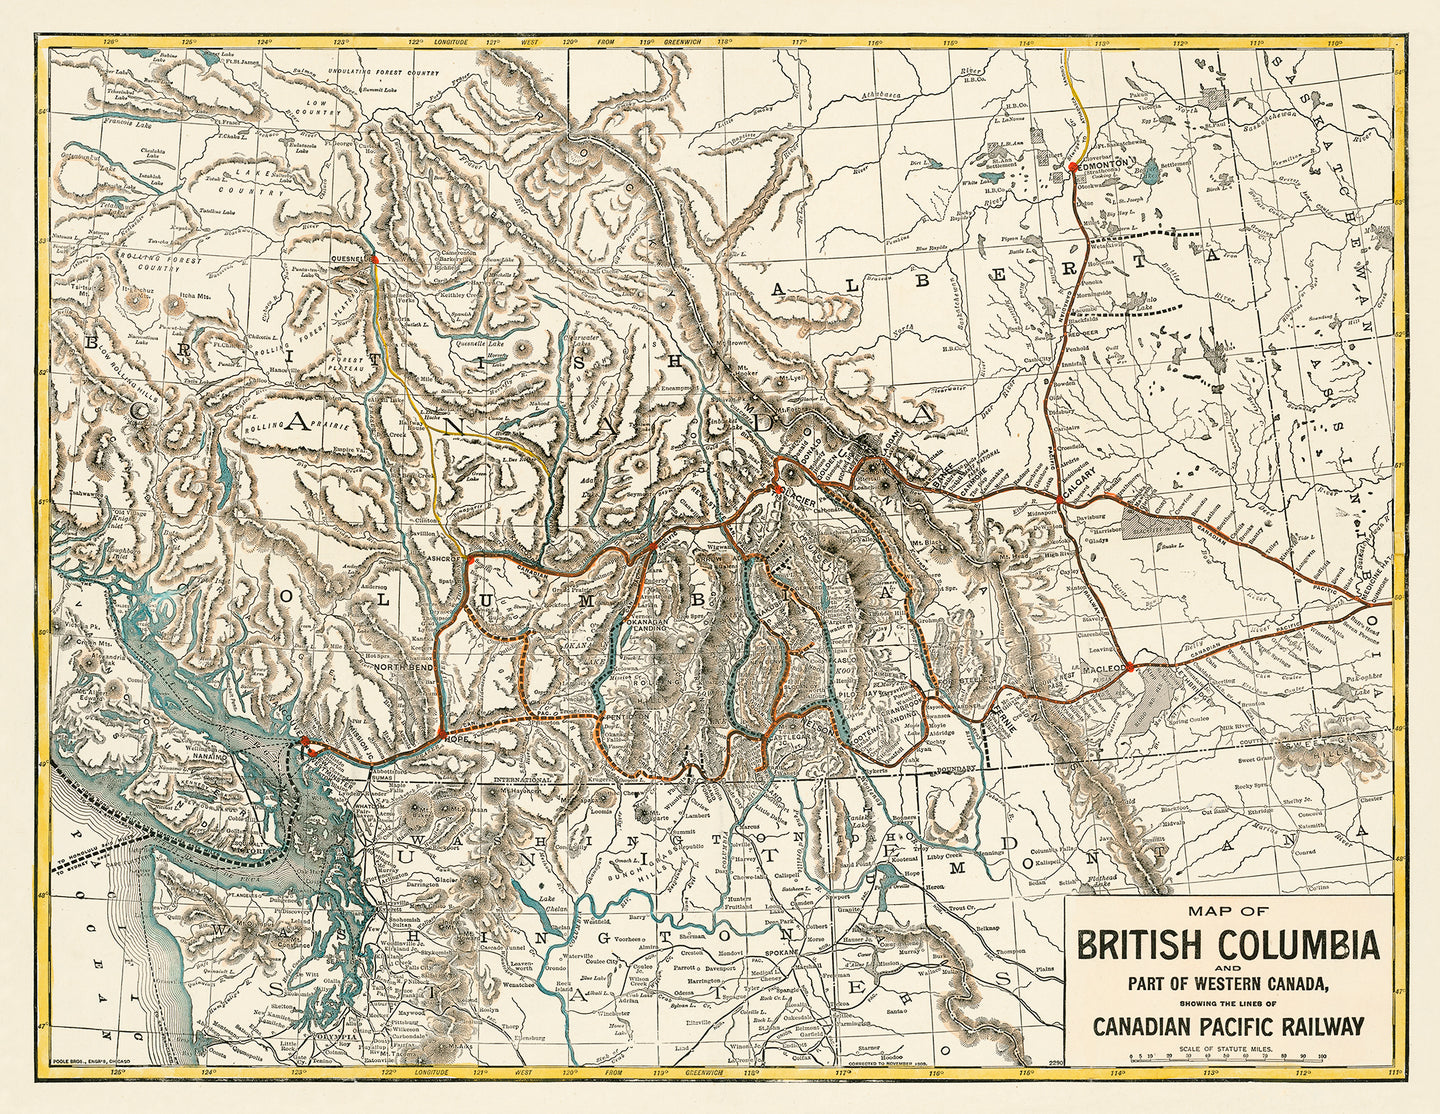 British Columbia - 1893 Canadian Pacific Railway Map